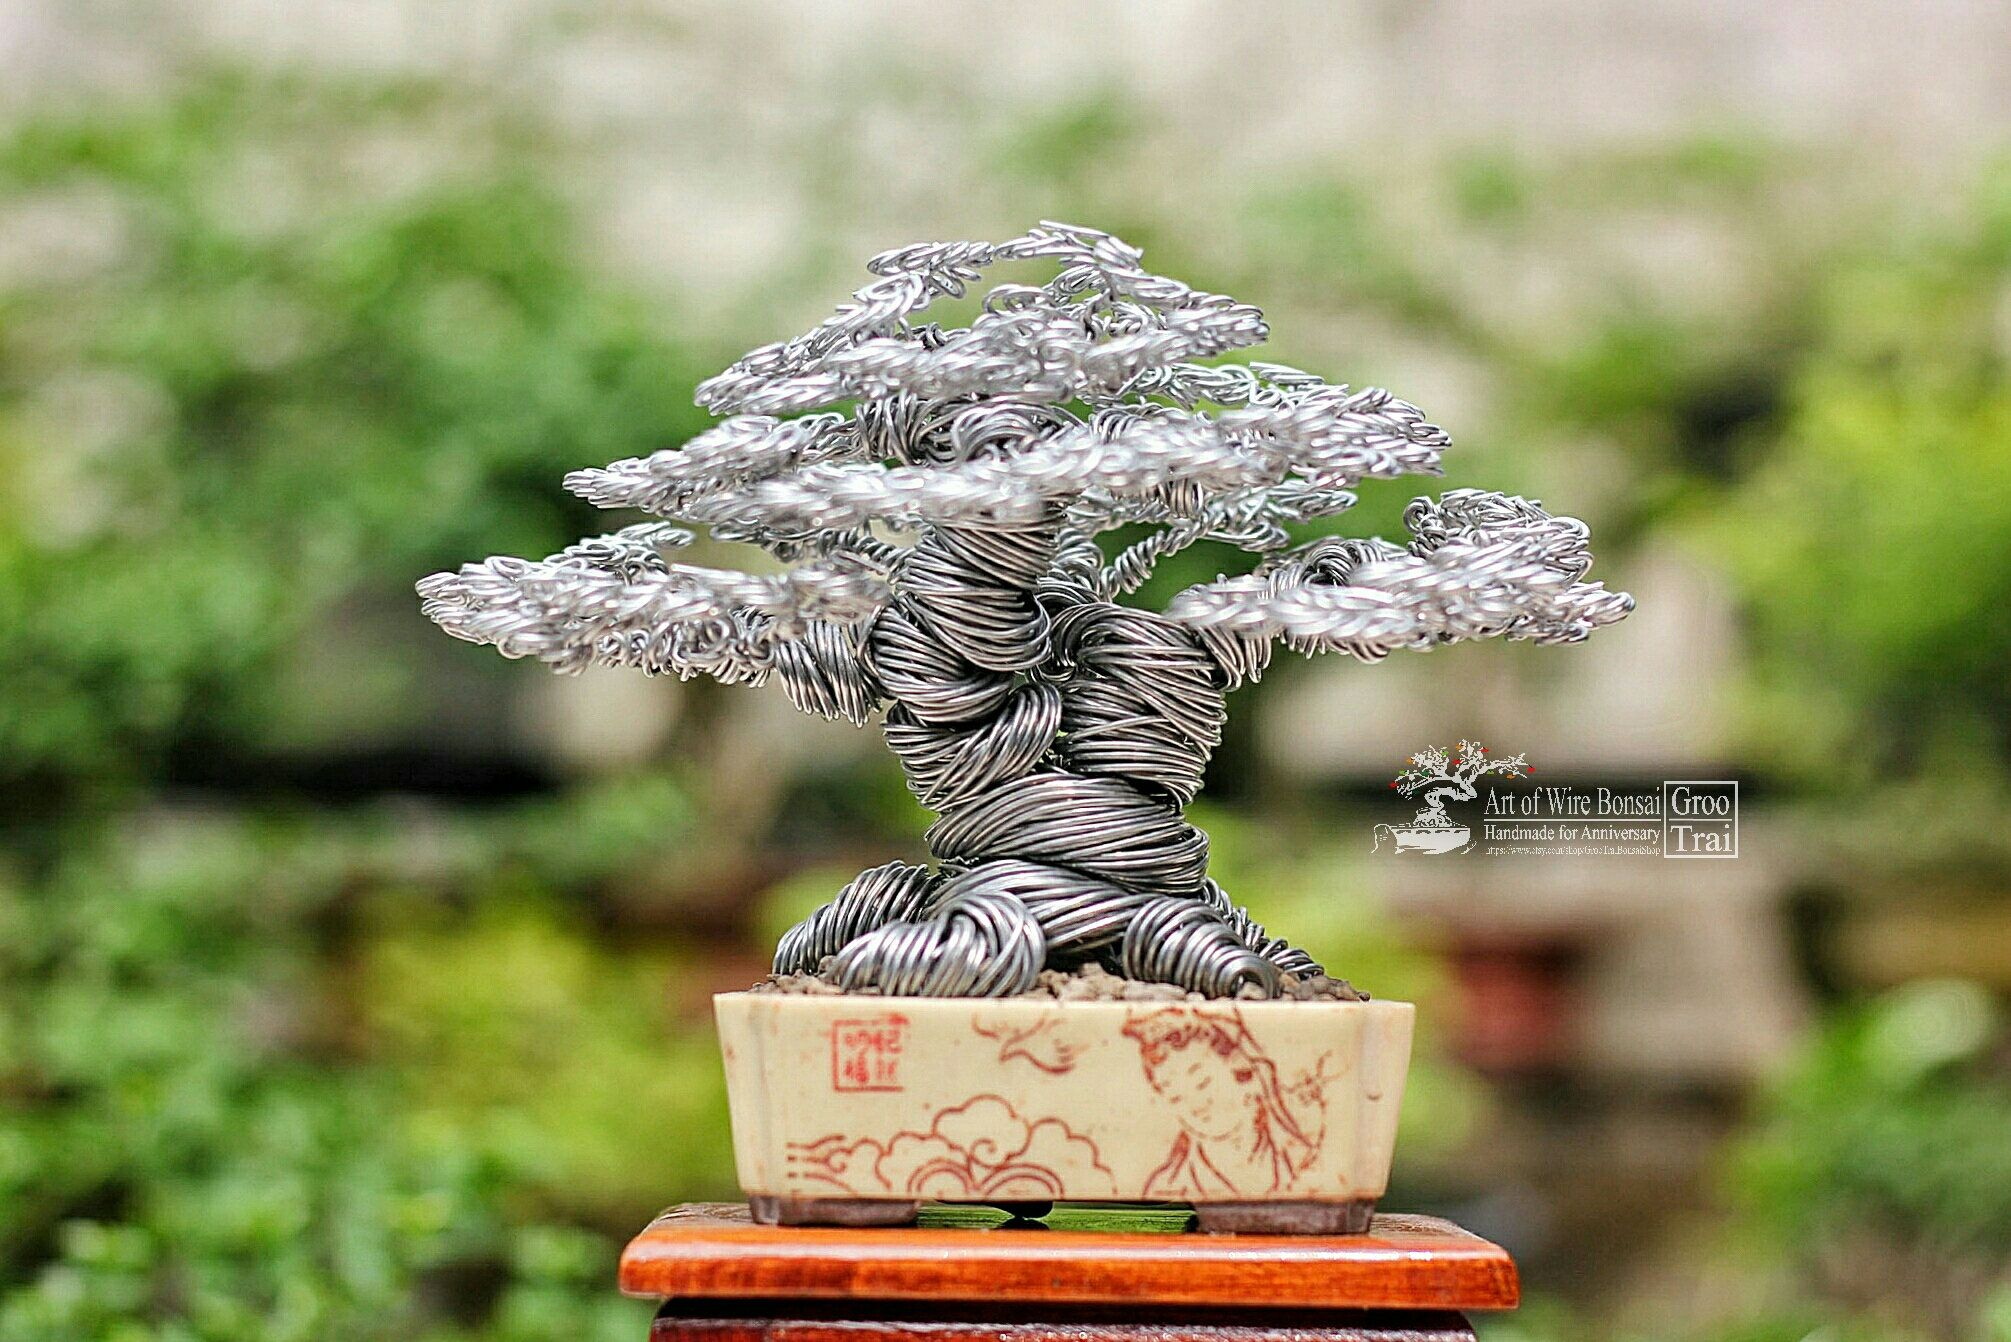 Silver Wire Bonsai Tree Art Sculpture Handmade Broom Style Wiring Cypress Hokidachi Free Wood Stand And Shipping By Grootraibonsaishop On Etsy